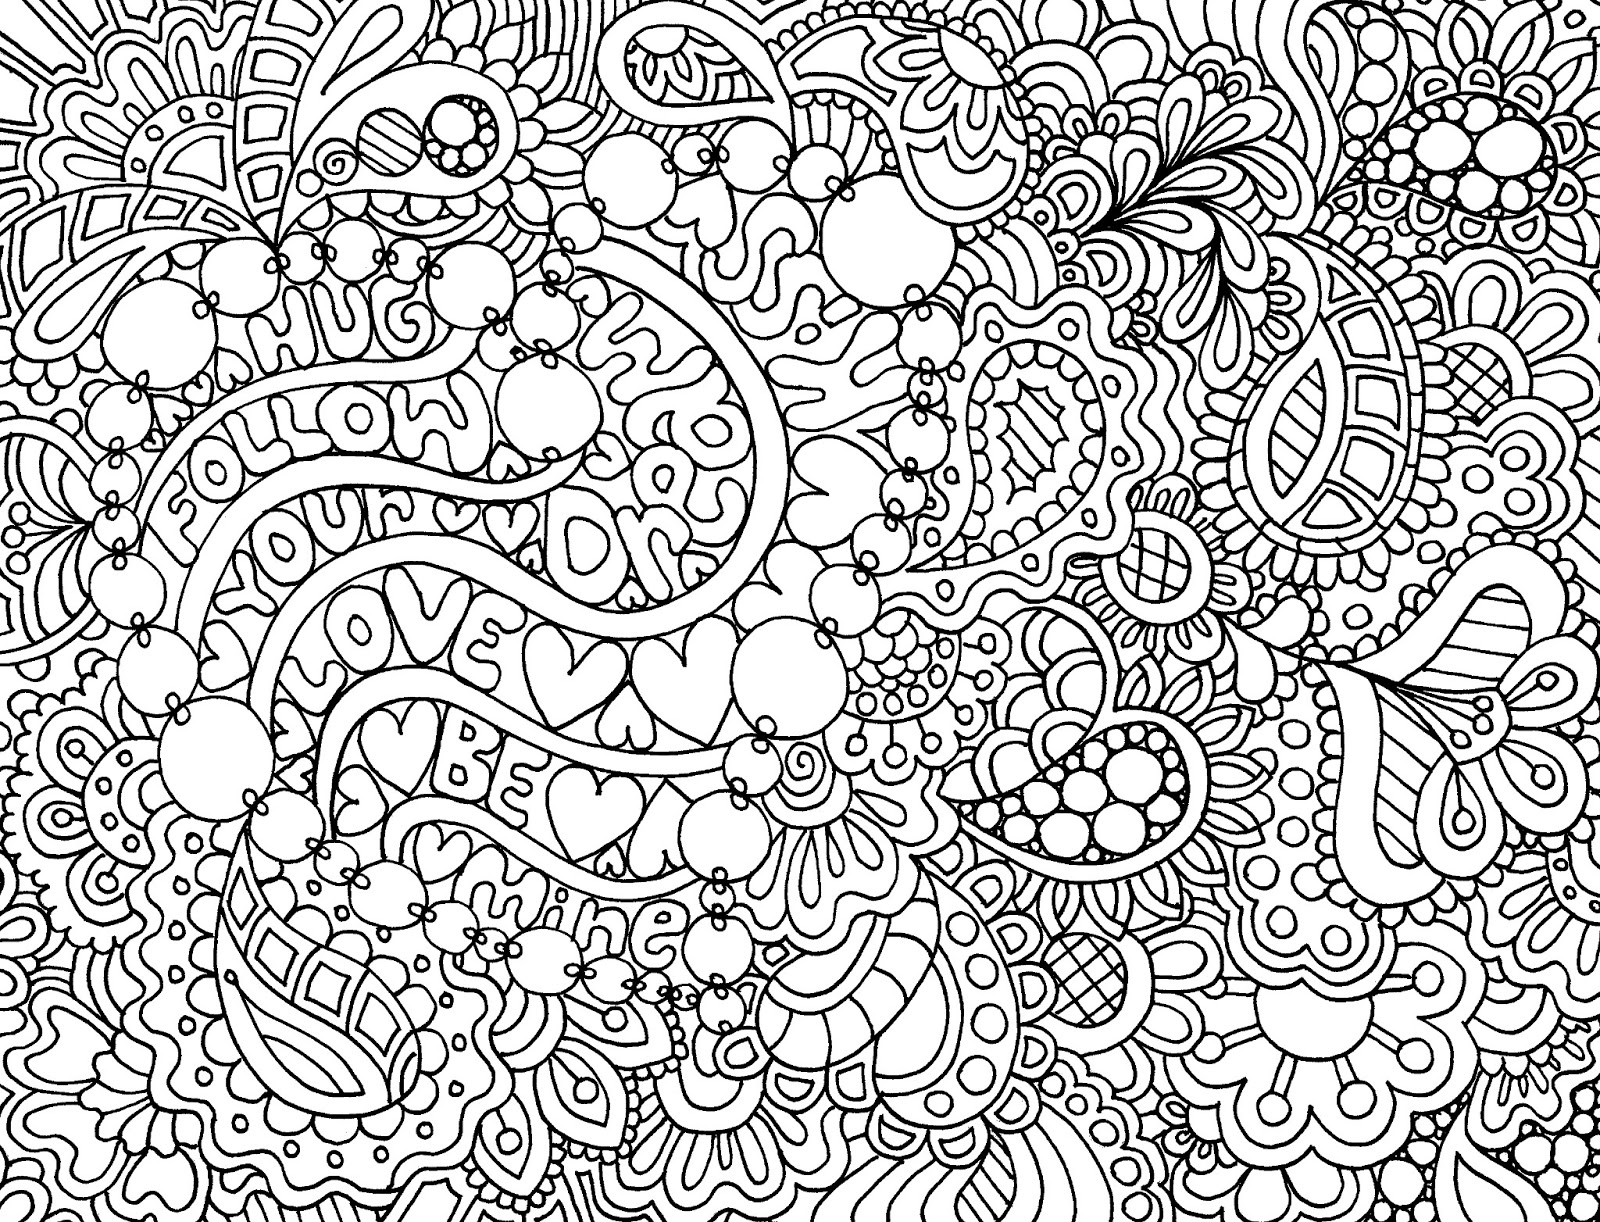 zendoodle coloring pages free | Zentangle on Pinterest | Zentangle, Doodles and Zentangle ...